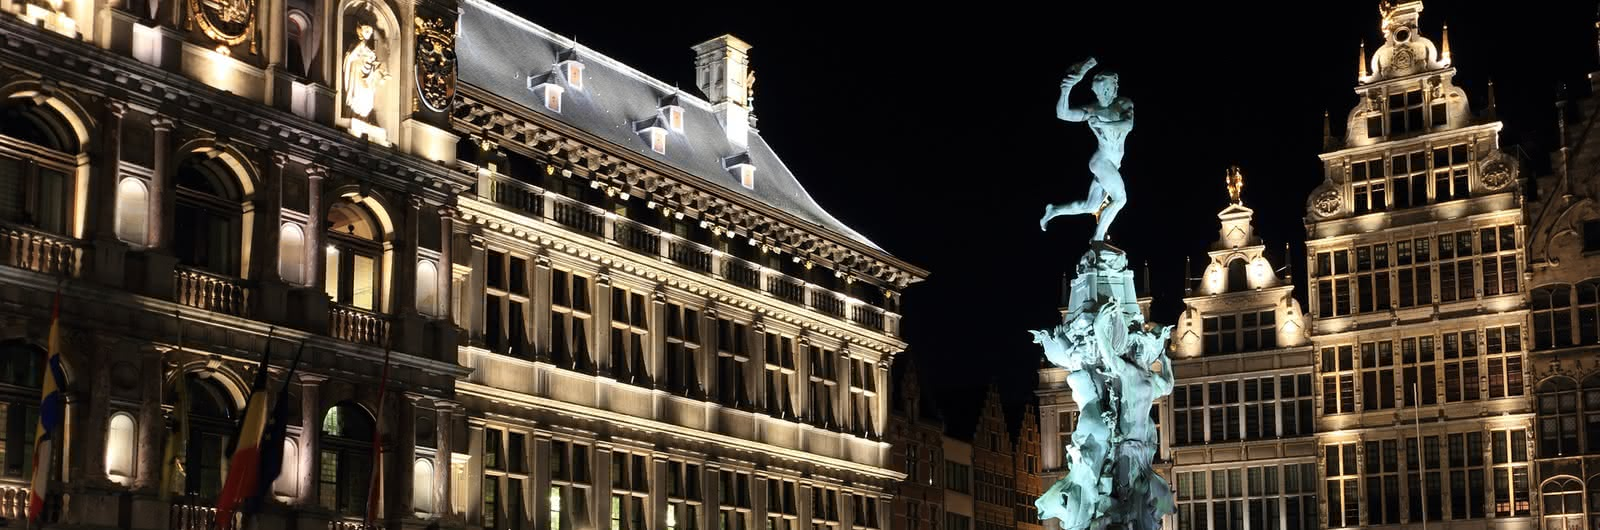 antwerpen city header